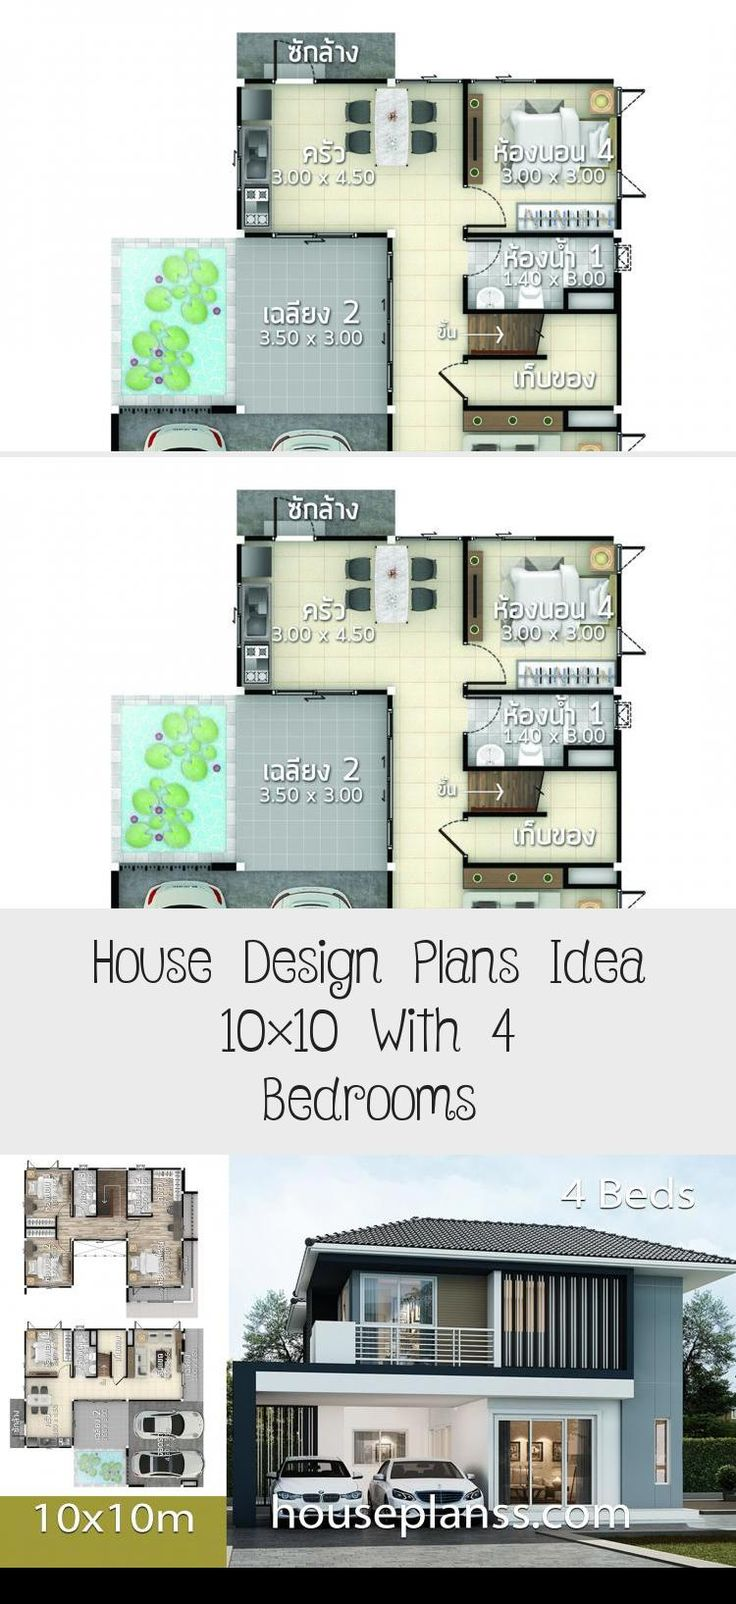 10x10 Bedroom Plans: House Design Plans Idea 10x10 With 4 Bedrooms